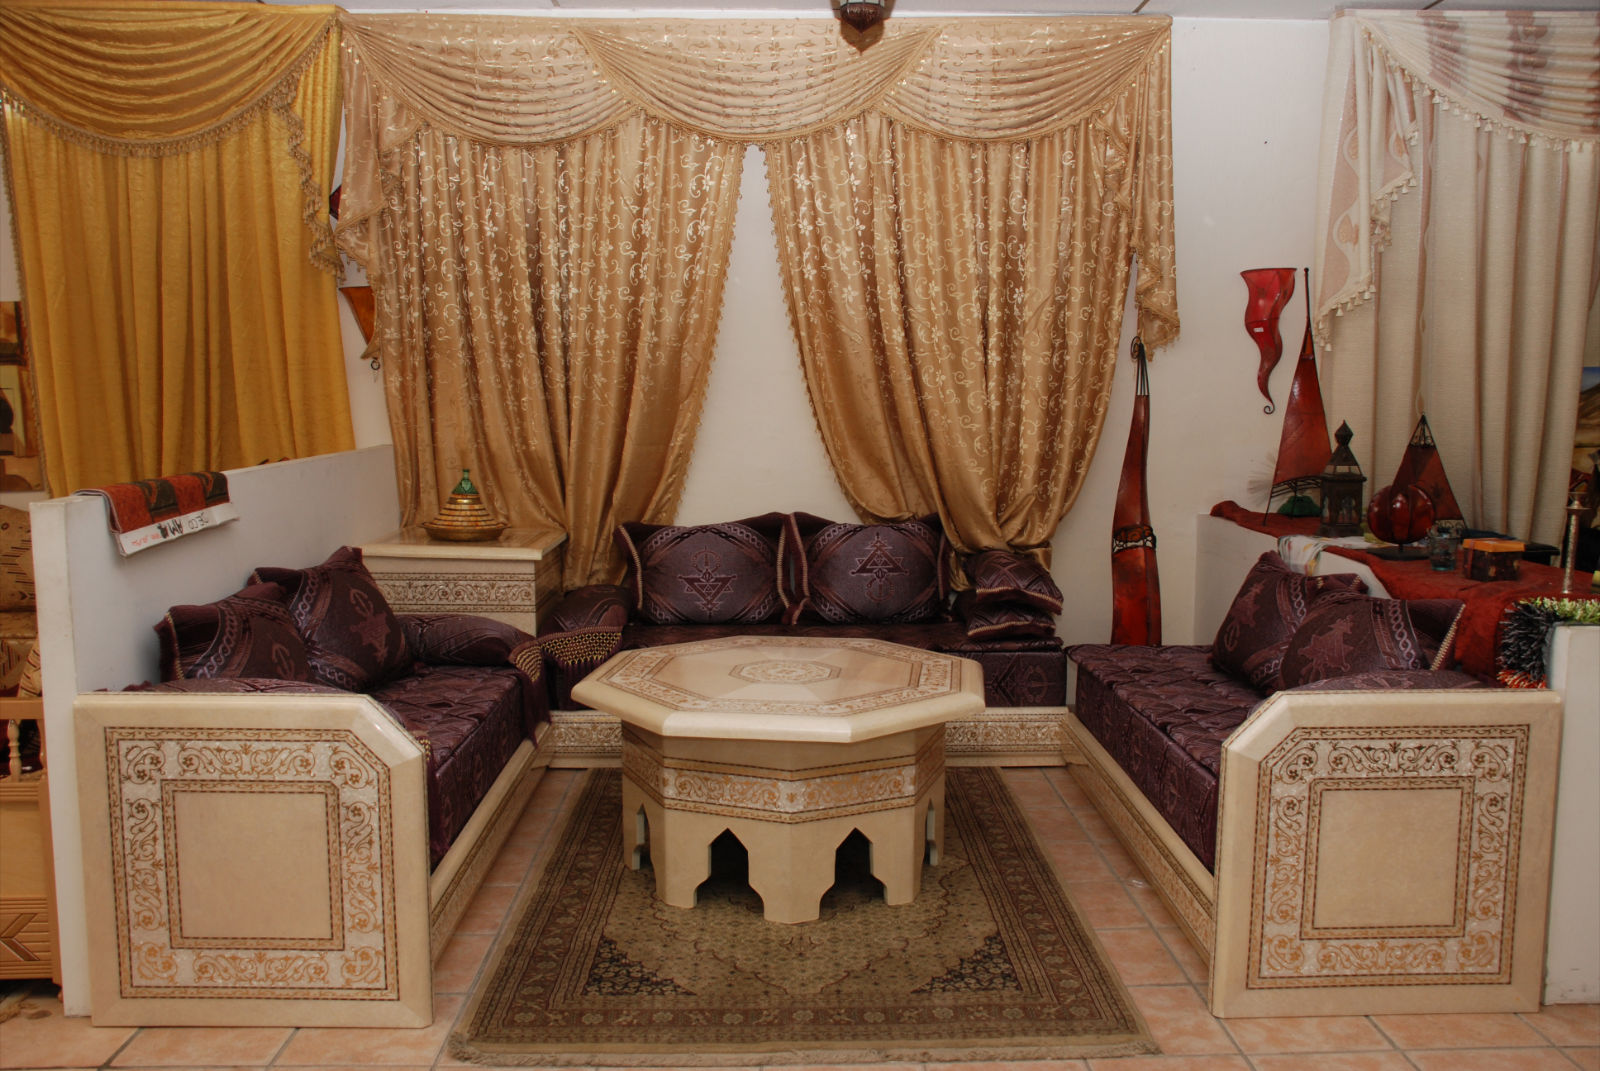 Decoration maison marocaine 2016 for Maison deco 2016